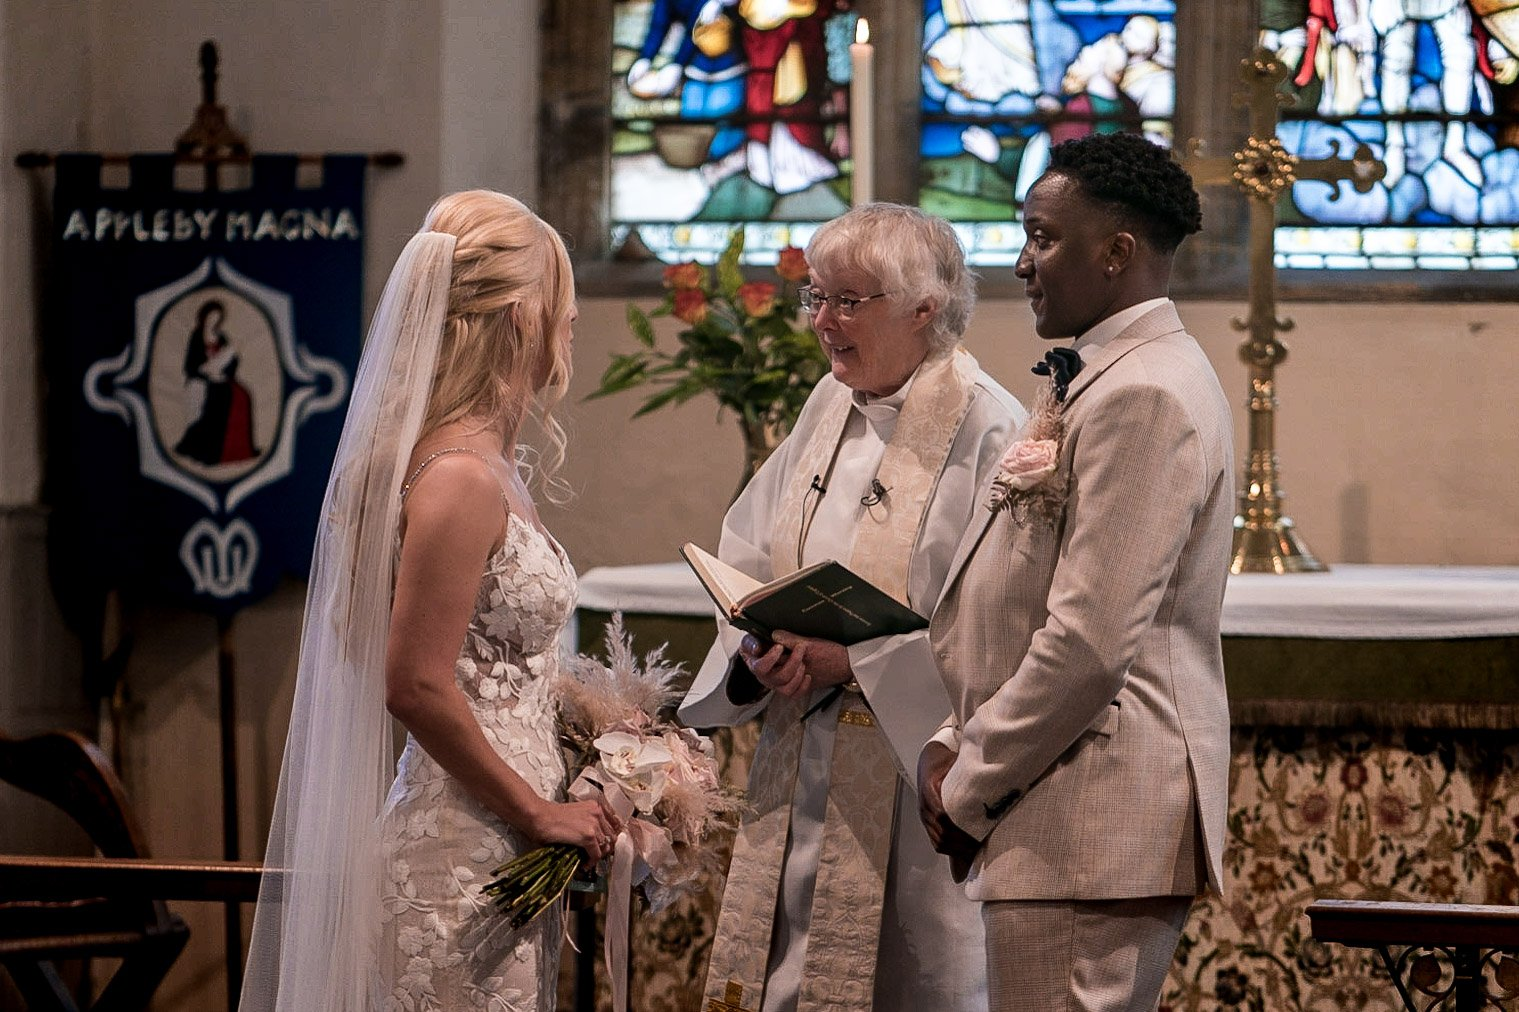 Your Favourite Frame YFFUK Mwasuku St Michaels Church Appleby Magna bride and groom at the high altar for their wedding blessing with the vicar smiling through the middle groom beaming